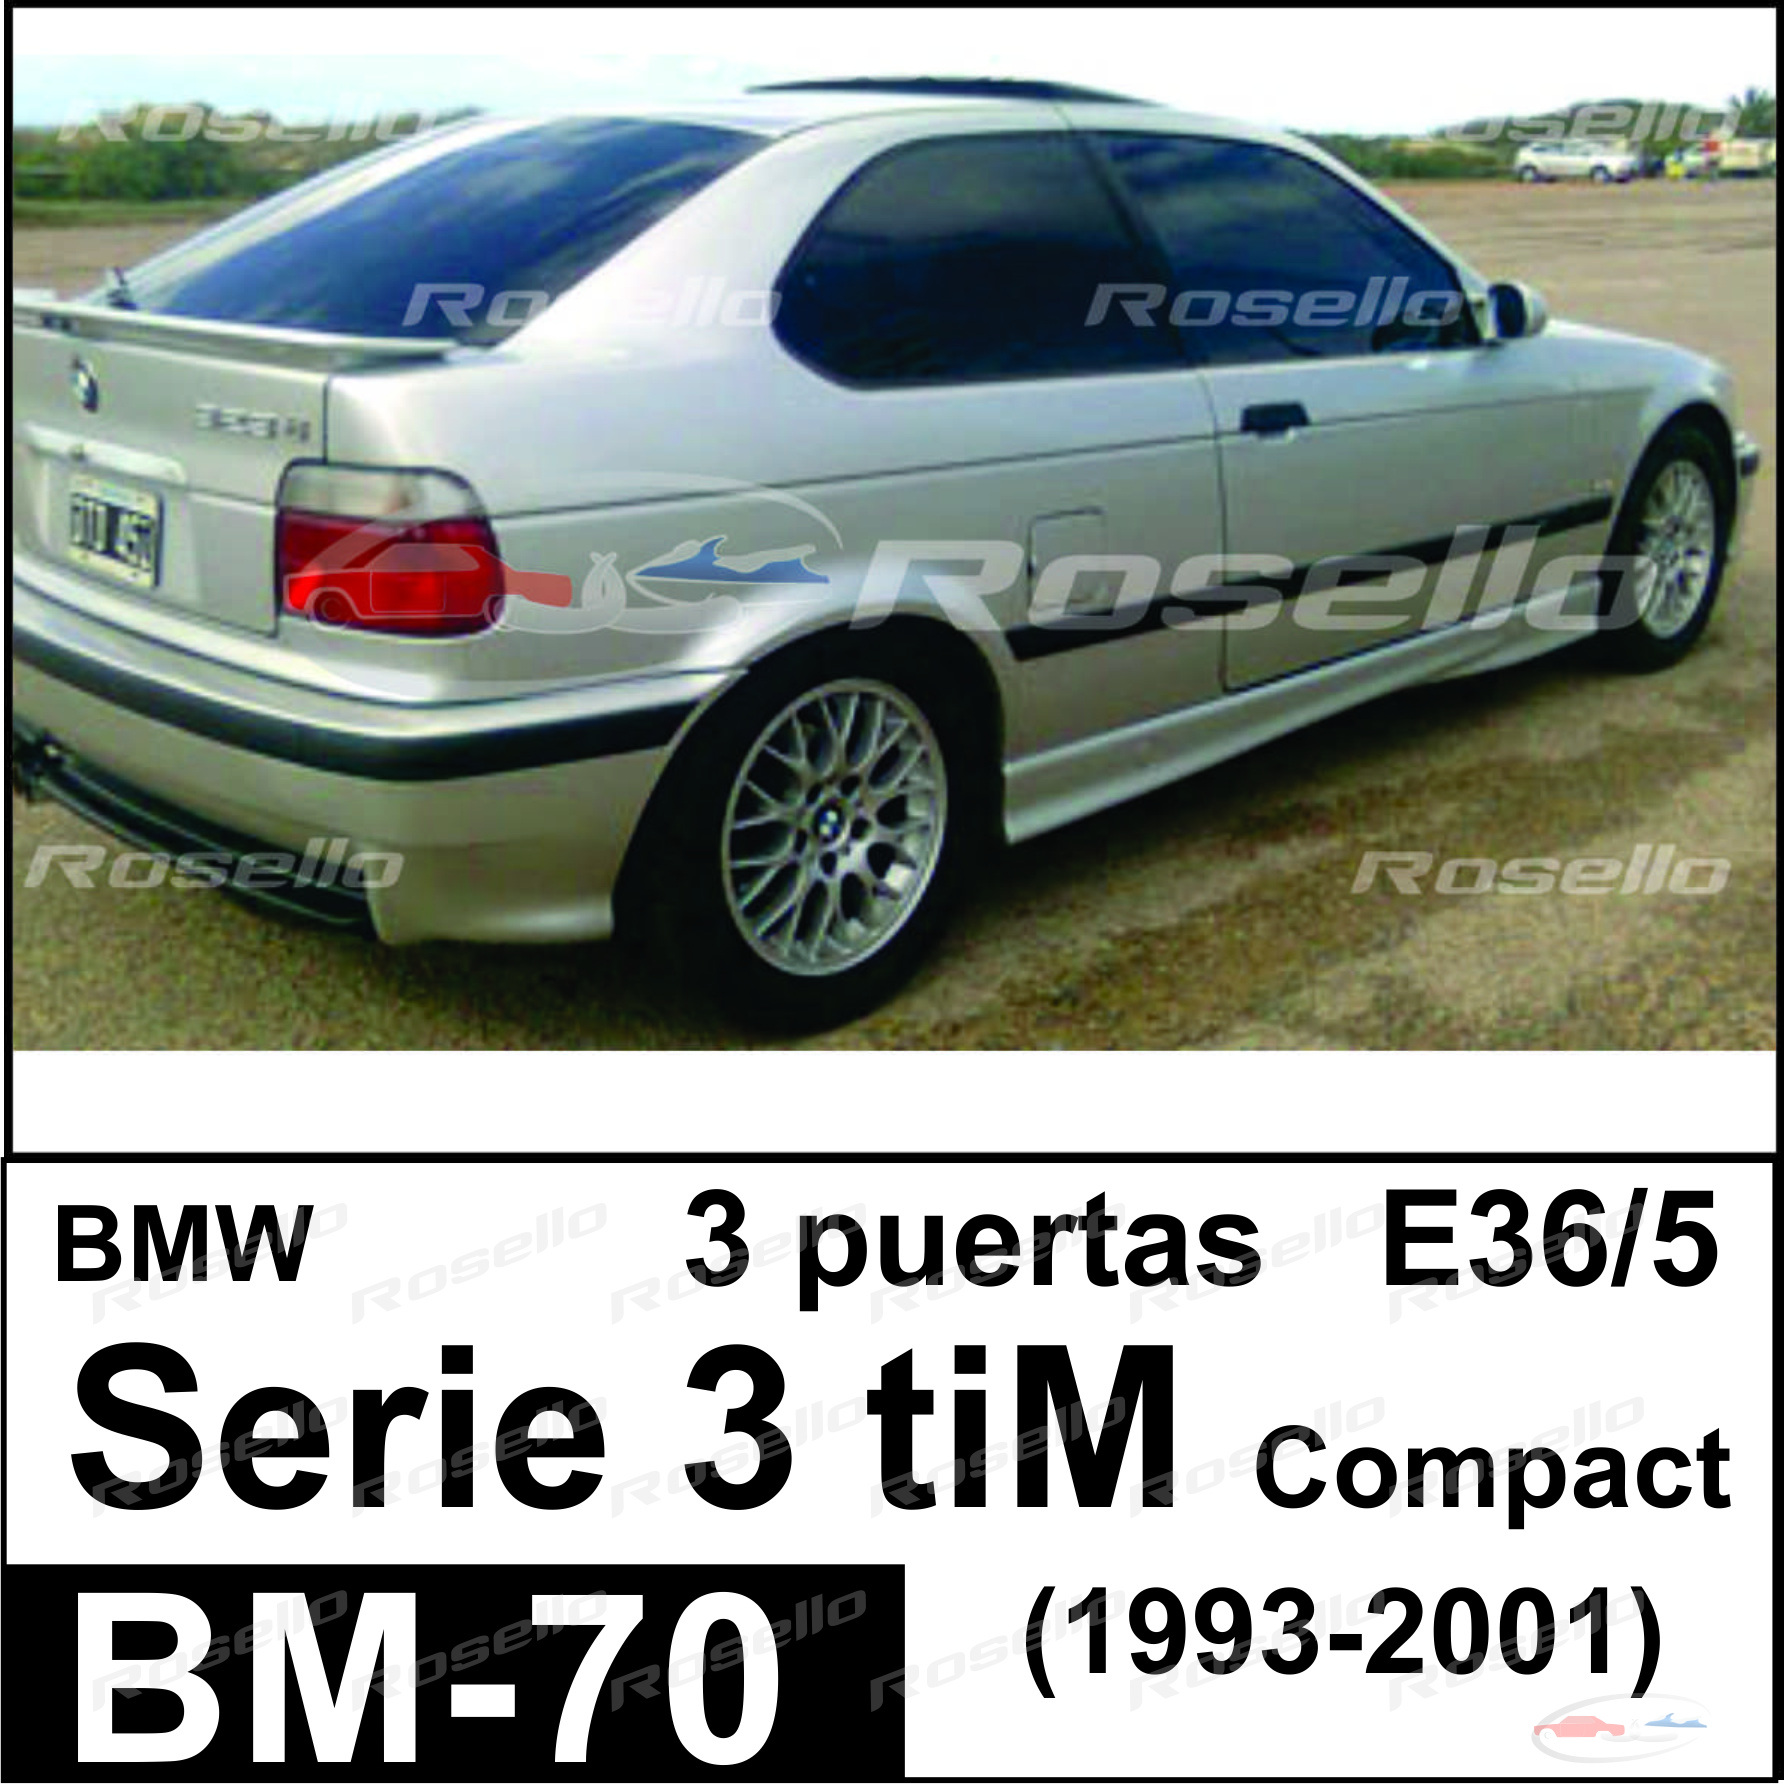 BM-70 Enganches Rosello